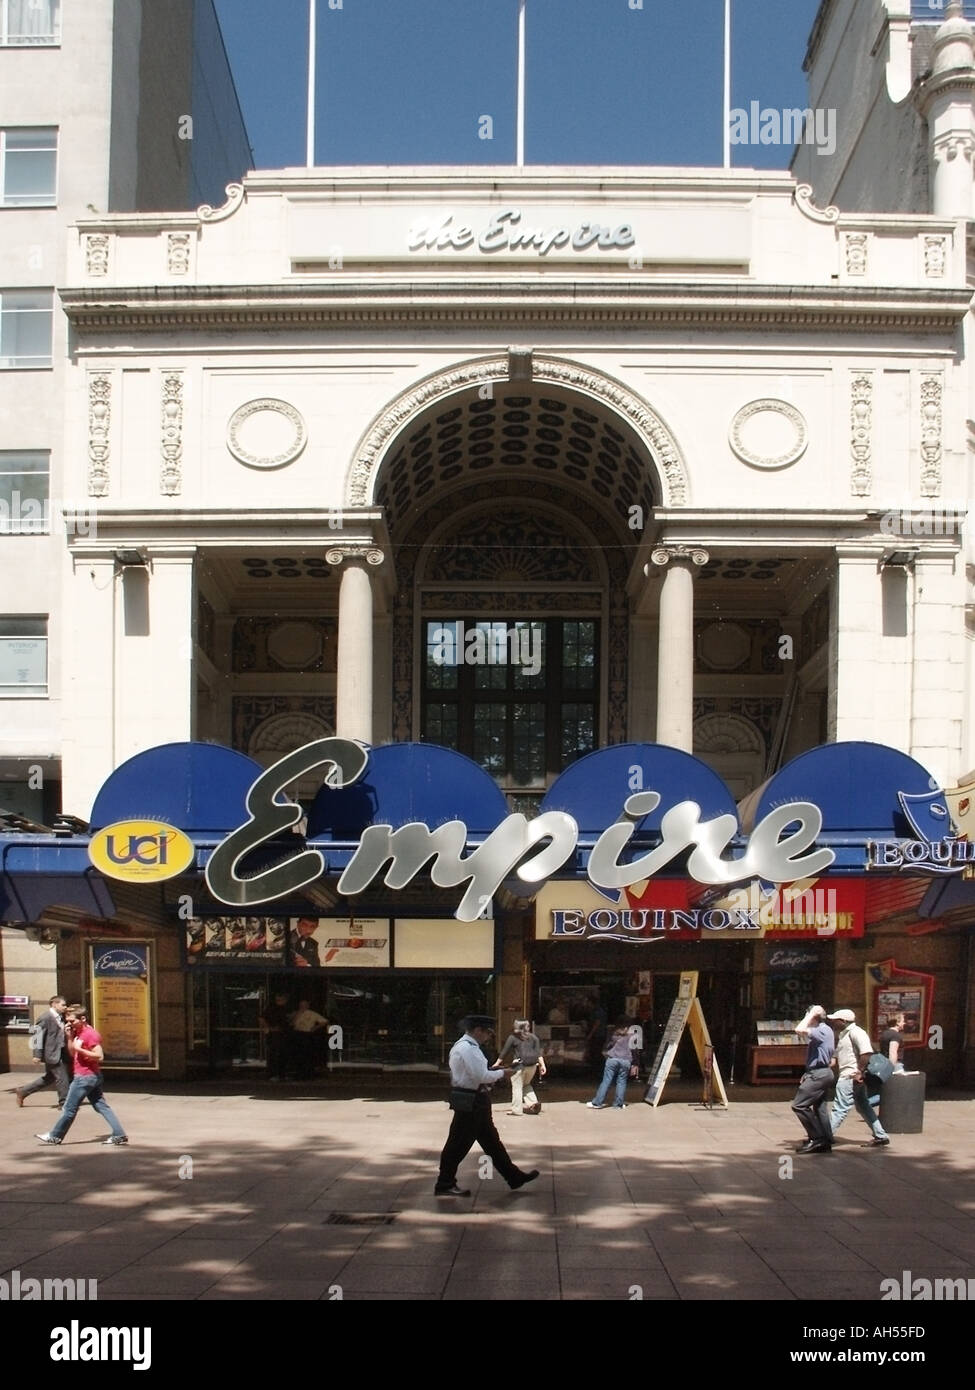 Archival historical view of large sign over entrance to The Empire Cinema Theatre Entertainment complex Leicester Stock Photo